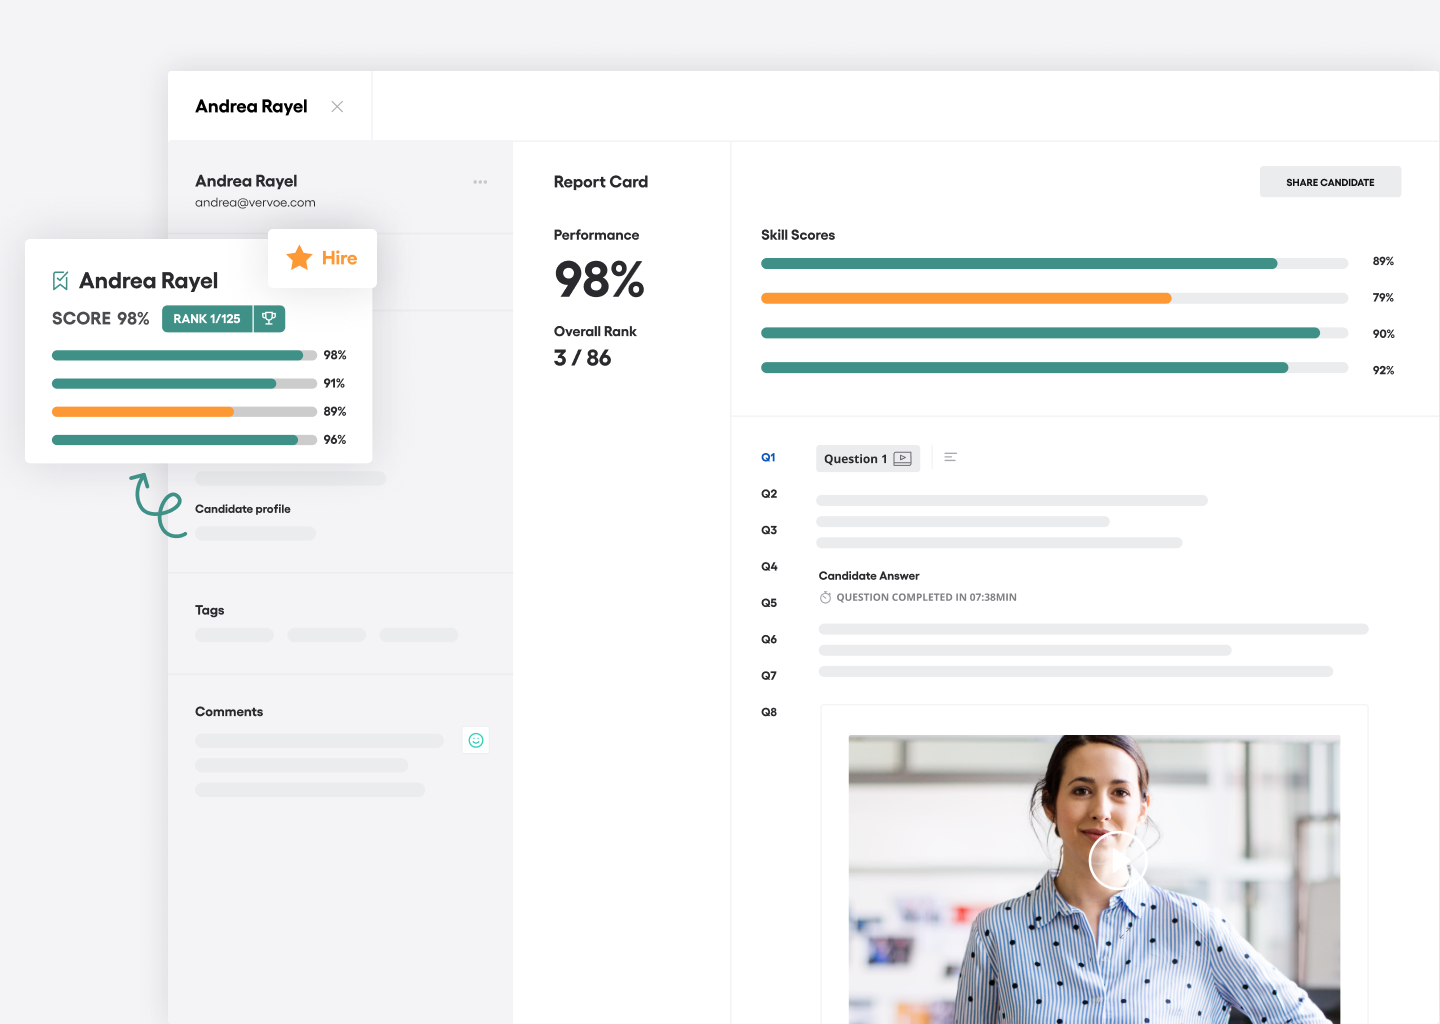 Vervoe Software - Hire the one for you: Once you've found the perfect fit mark them as `hired` in your assessment. Their assessment, skill profile and results can then be accessed at any time in all candidates